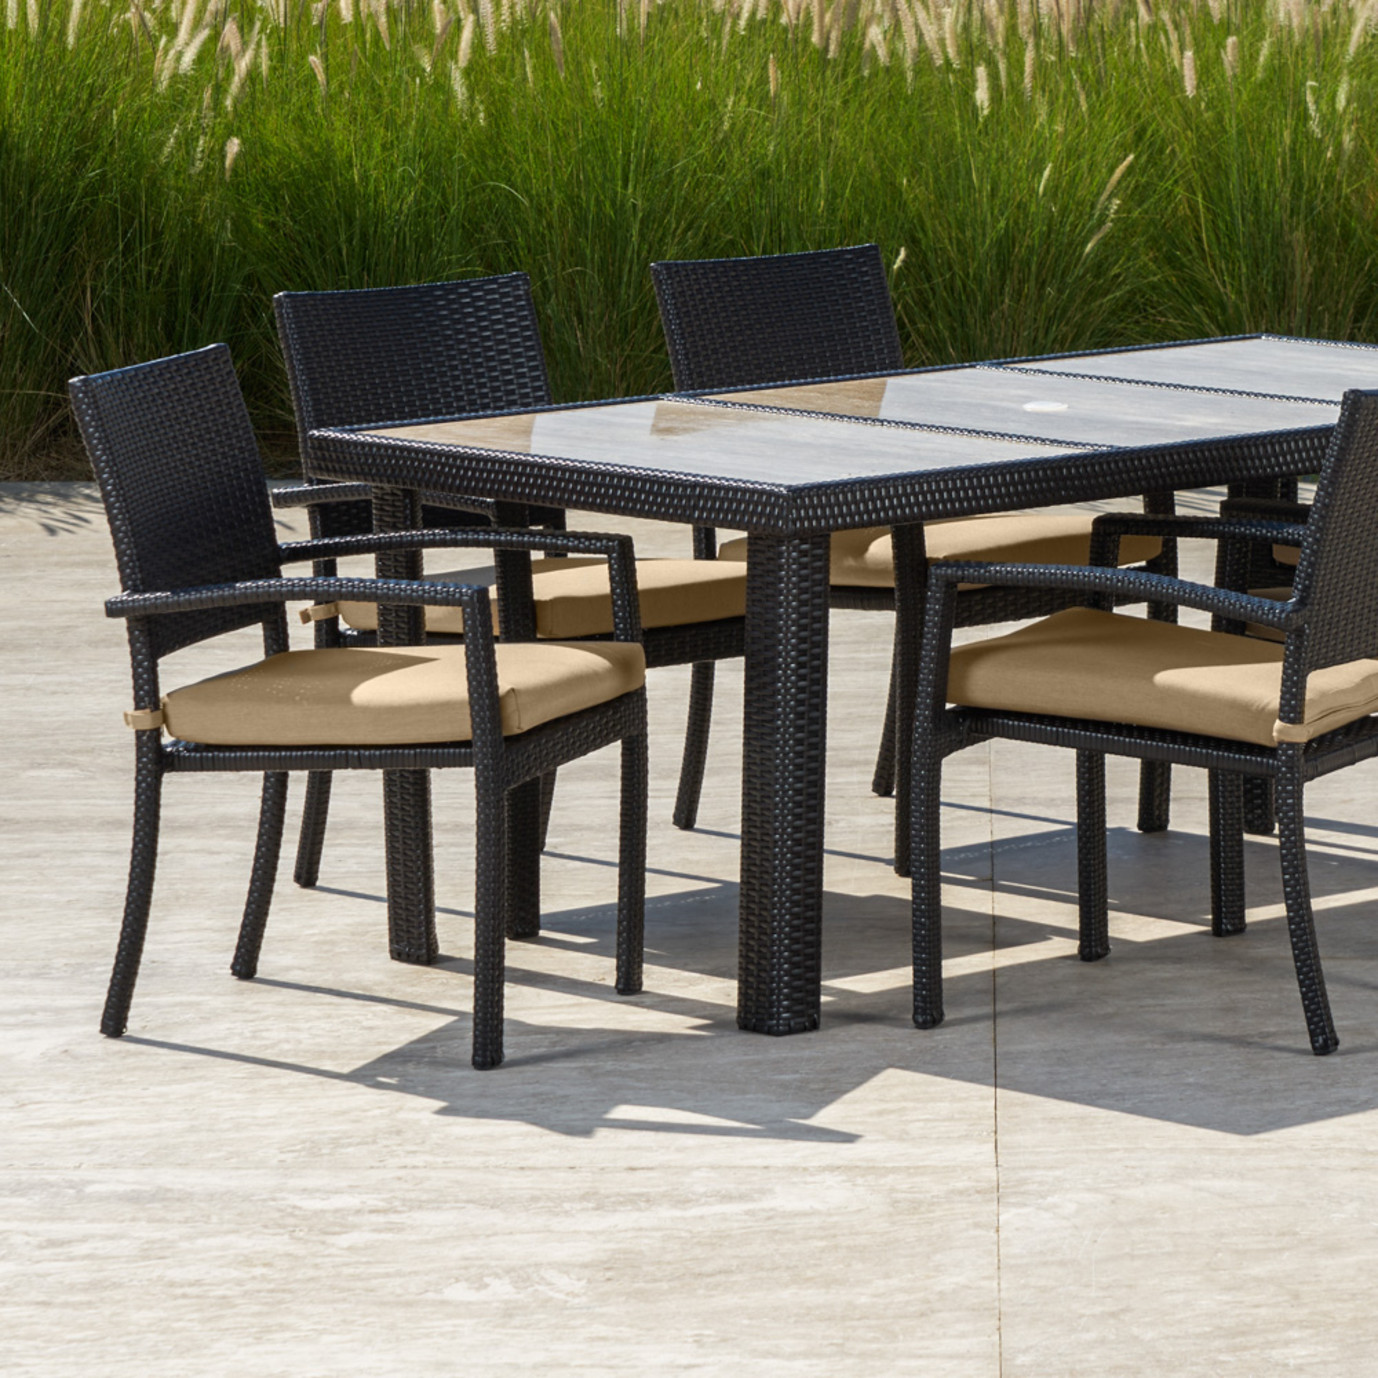 Portofino™ Comfort 7pc Dining Set - Heather Beige